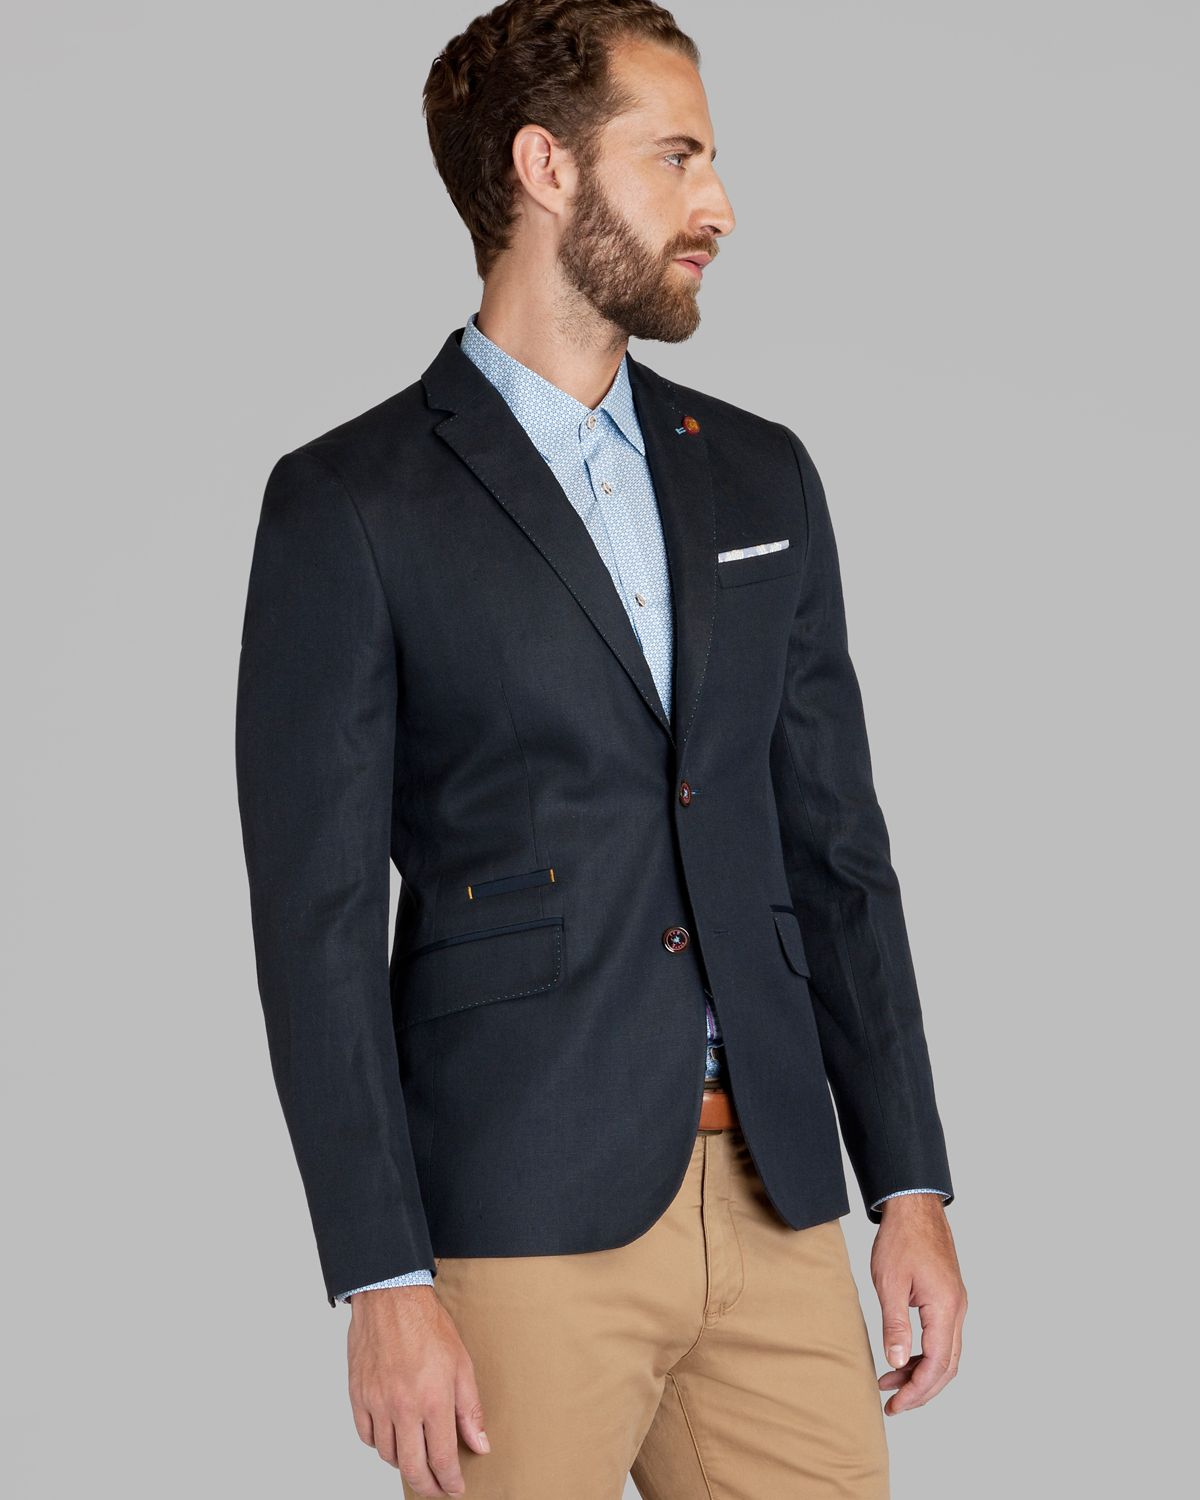 Ted baker Dainy Linen Blazer in Blue for Men | Lyst